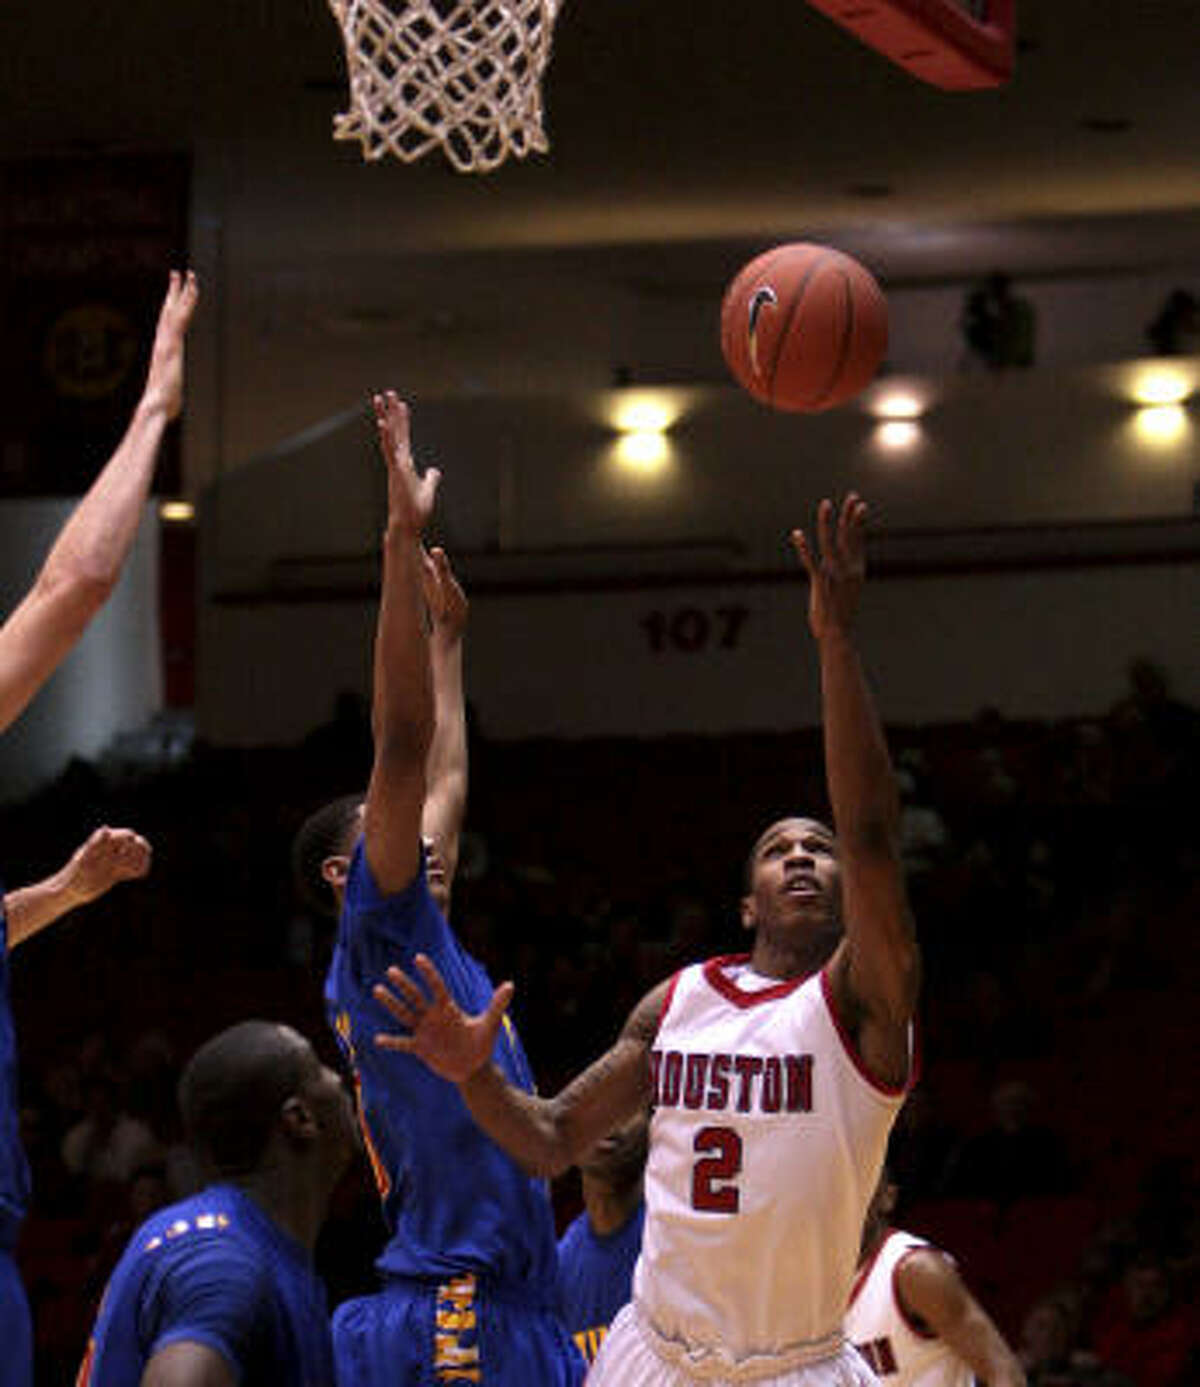 UH guard Zamal Nixon (2) drives to the basket during the second half. He led the Cougars with 14 points.